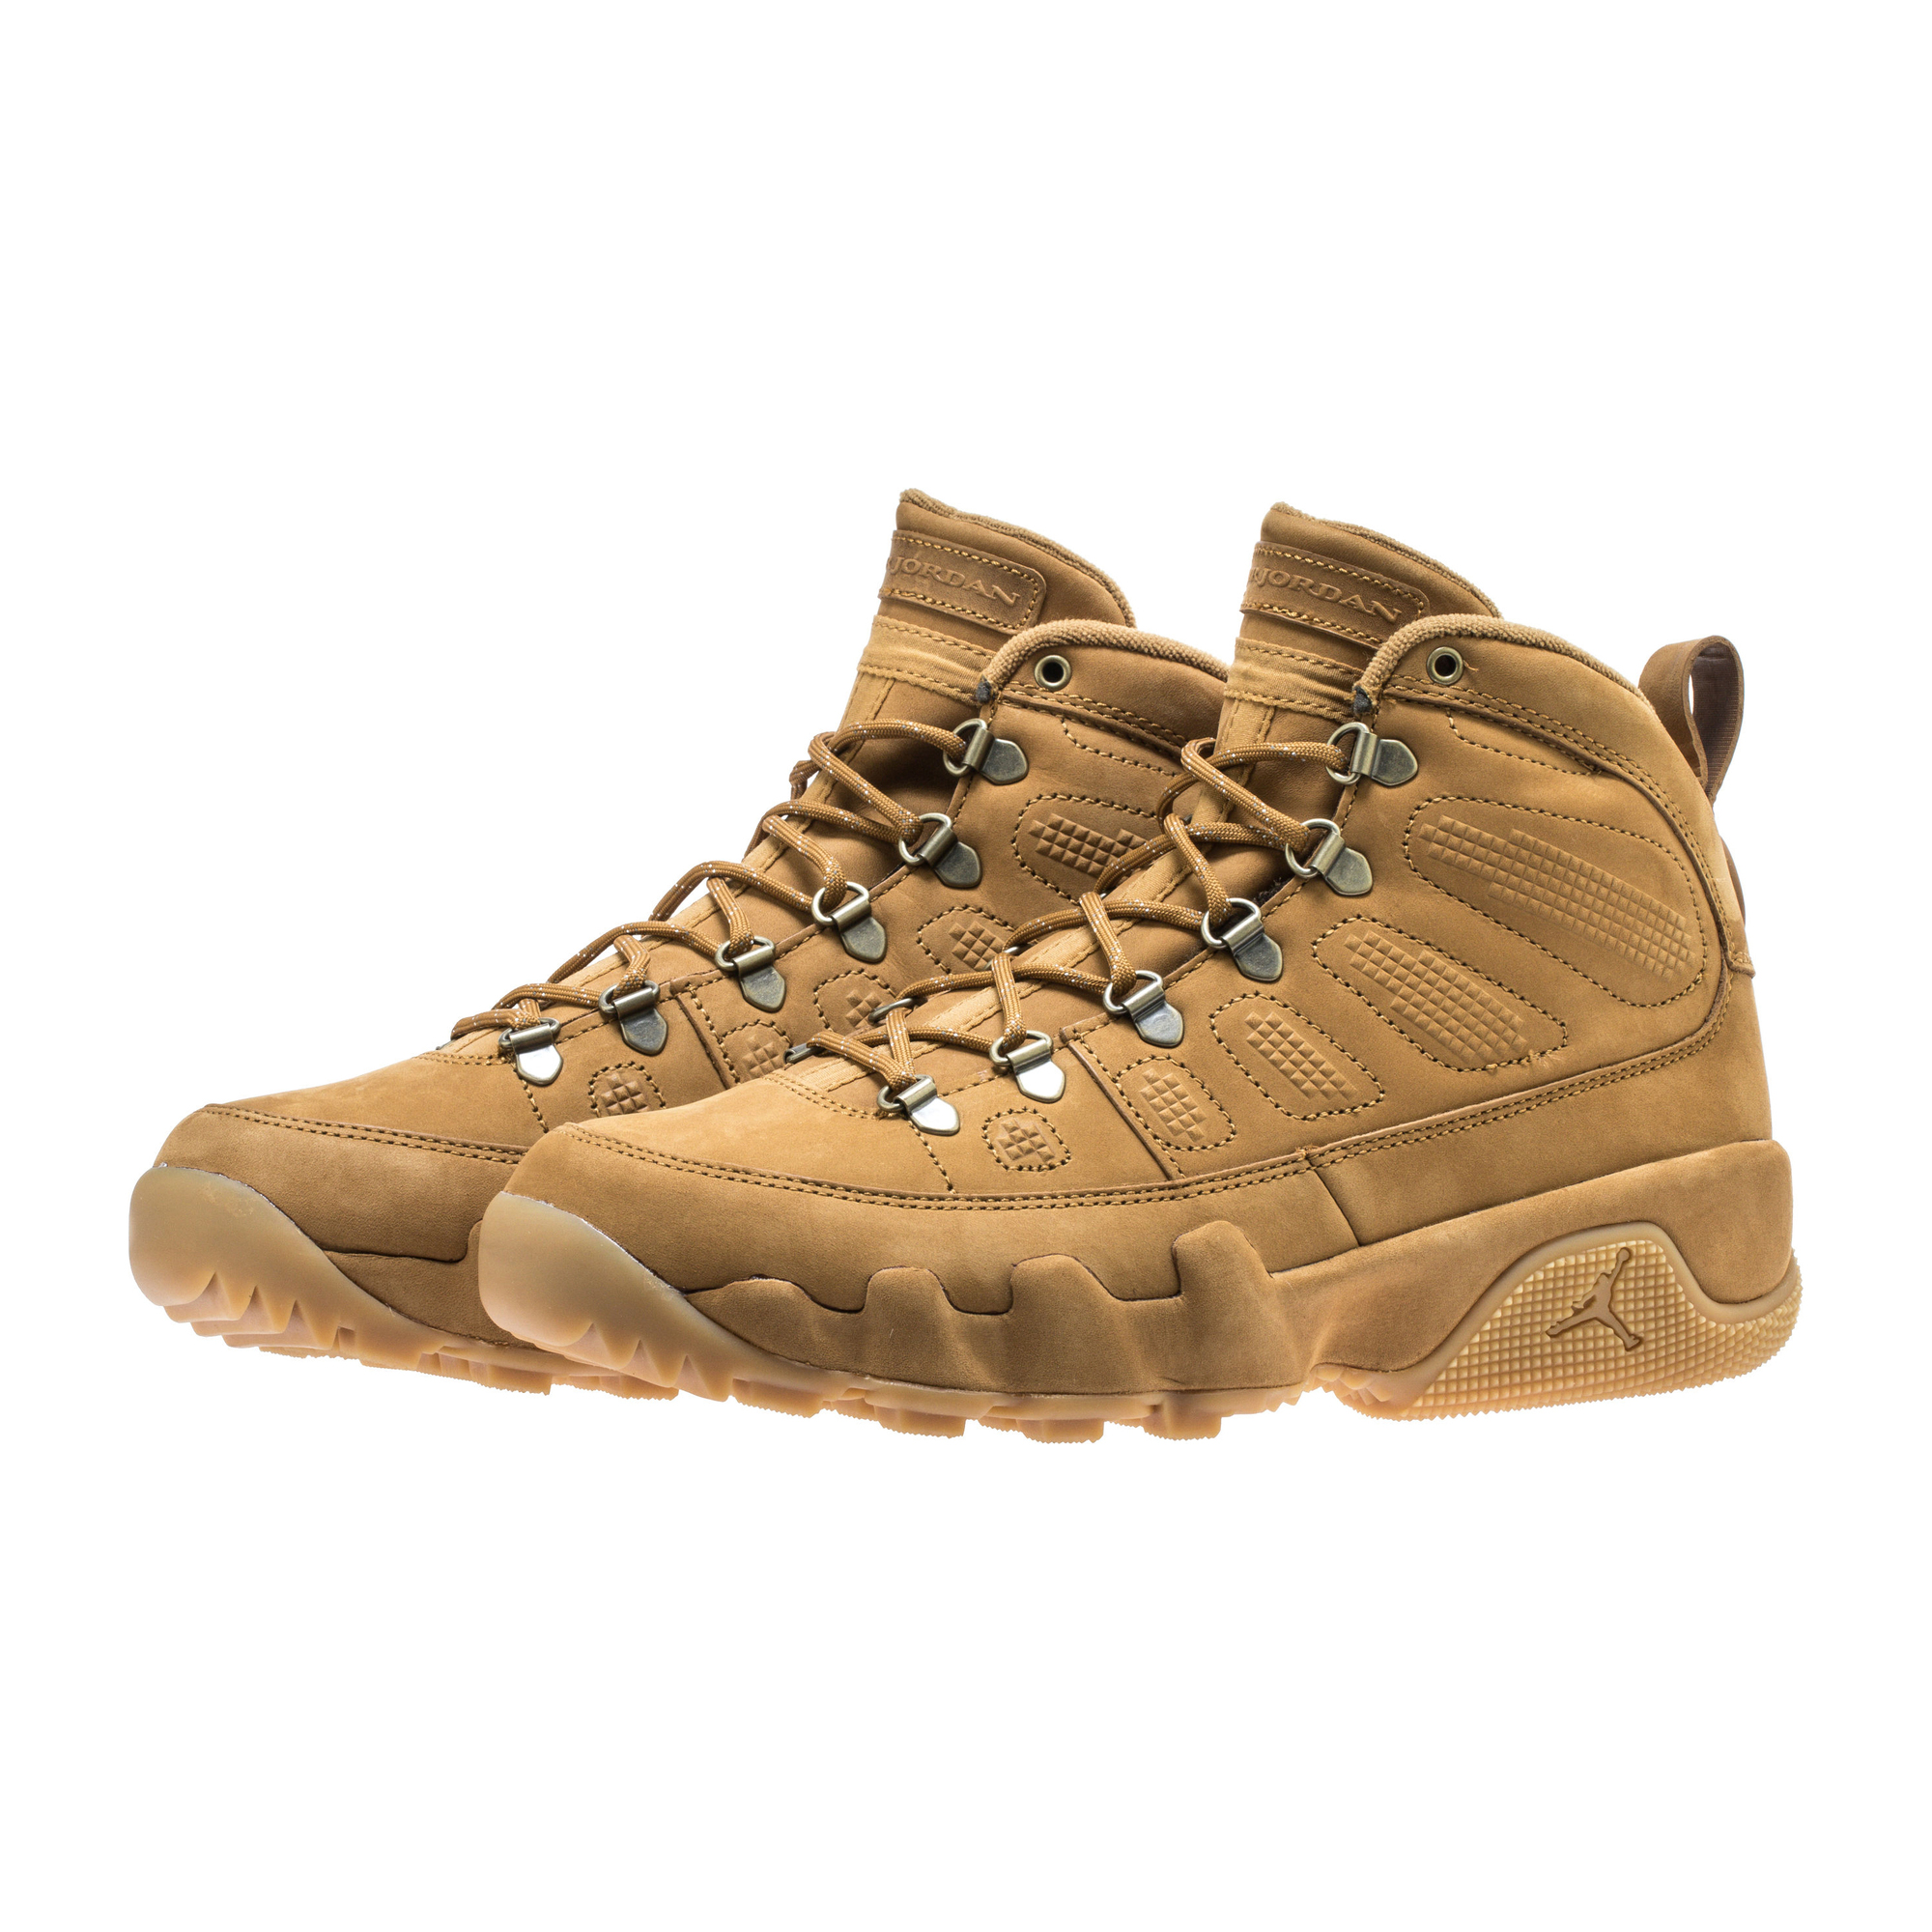 d9e3aa3b2661 air jordan 9 boot nrg · Jordan Brand   Kicks Off Court ...